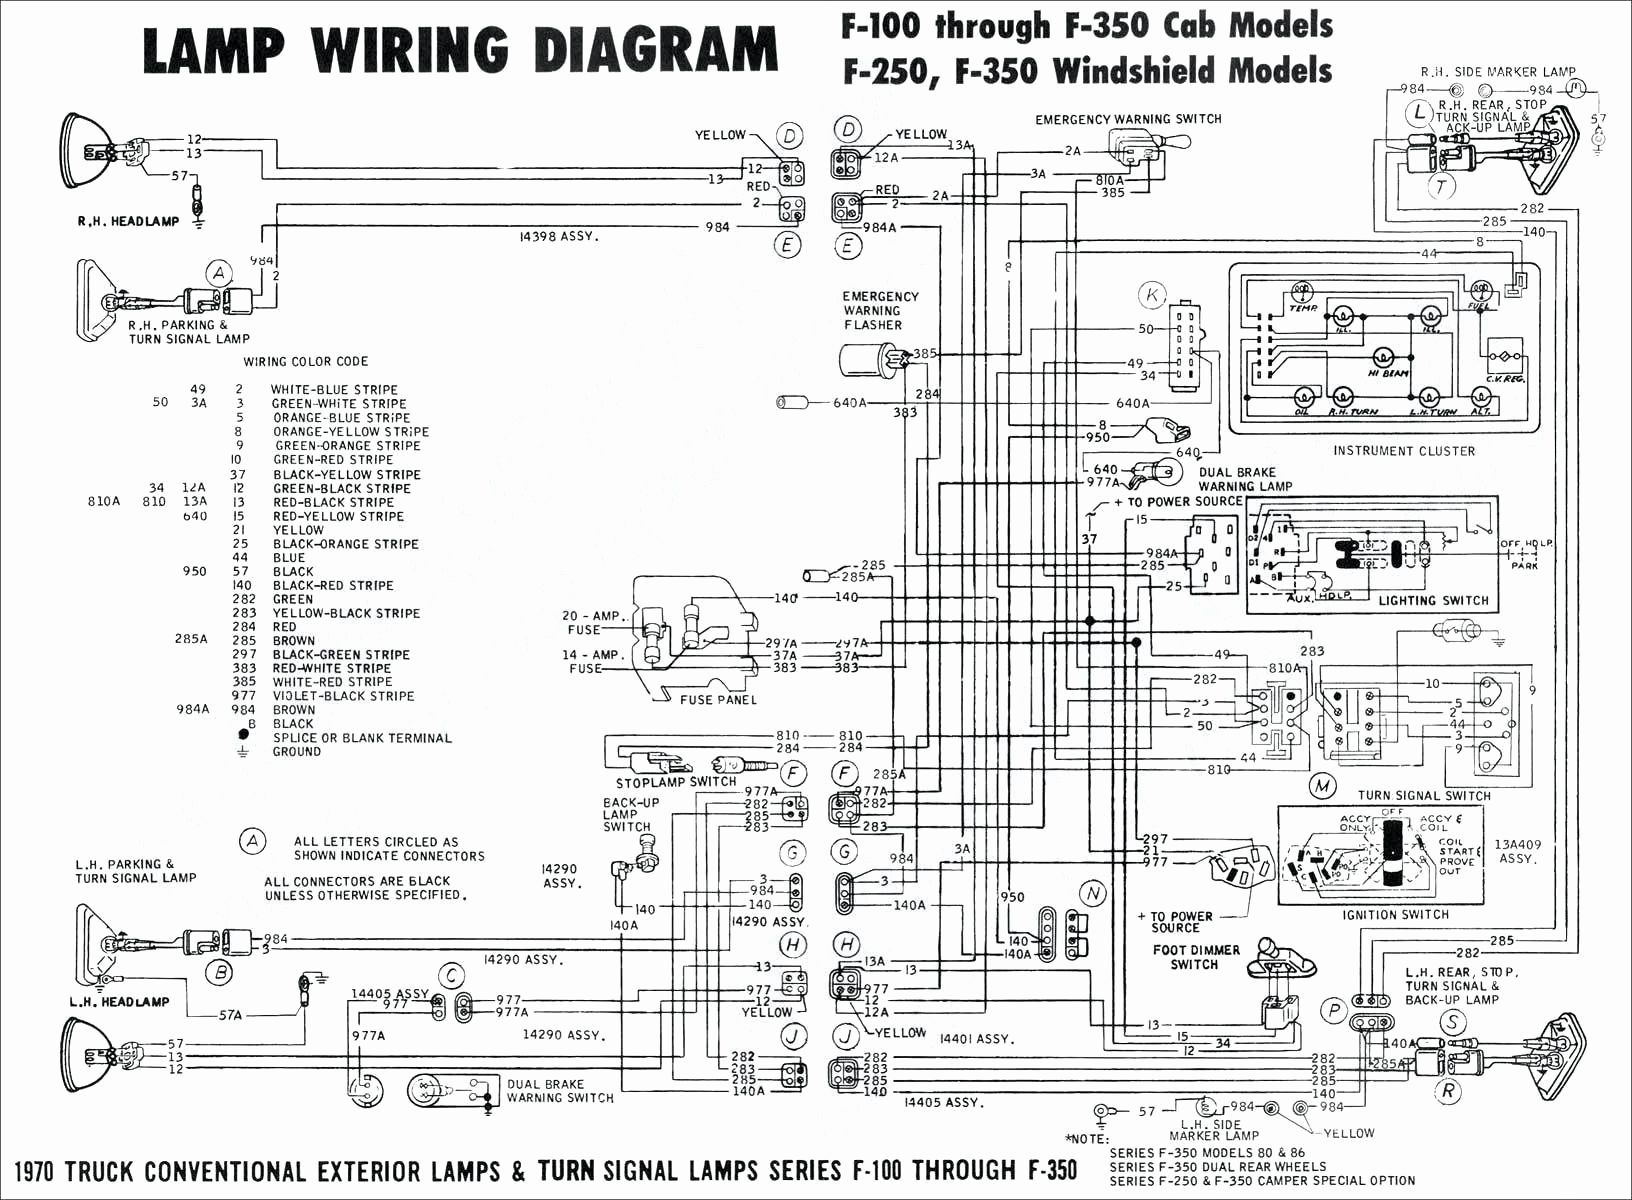 featherlite trailer plug wiring diagram  featherlite